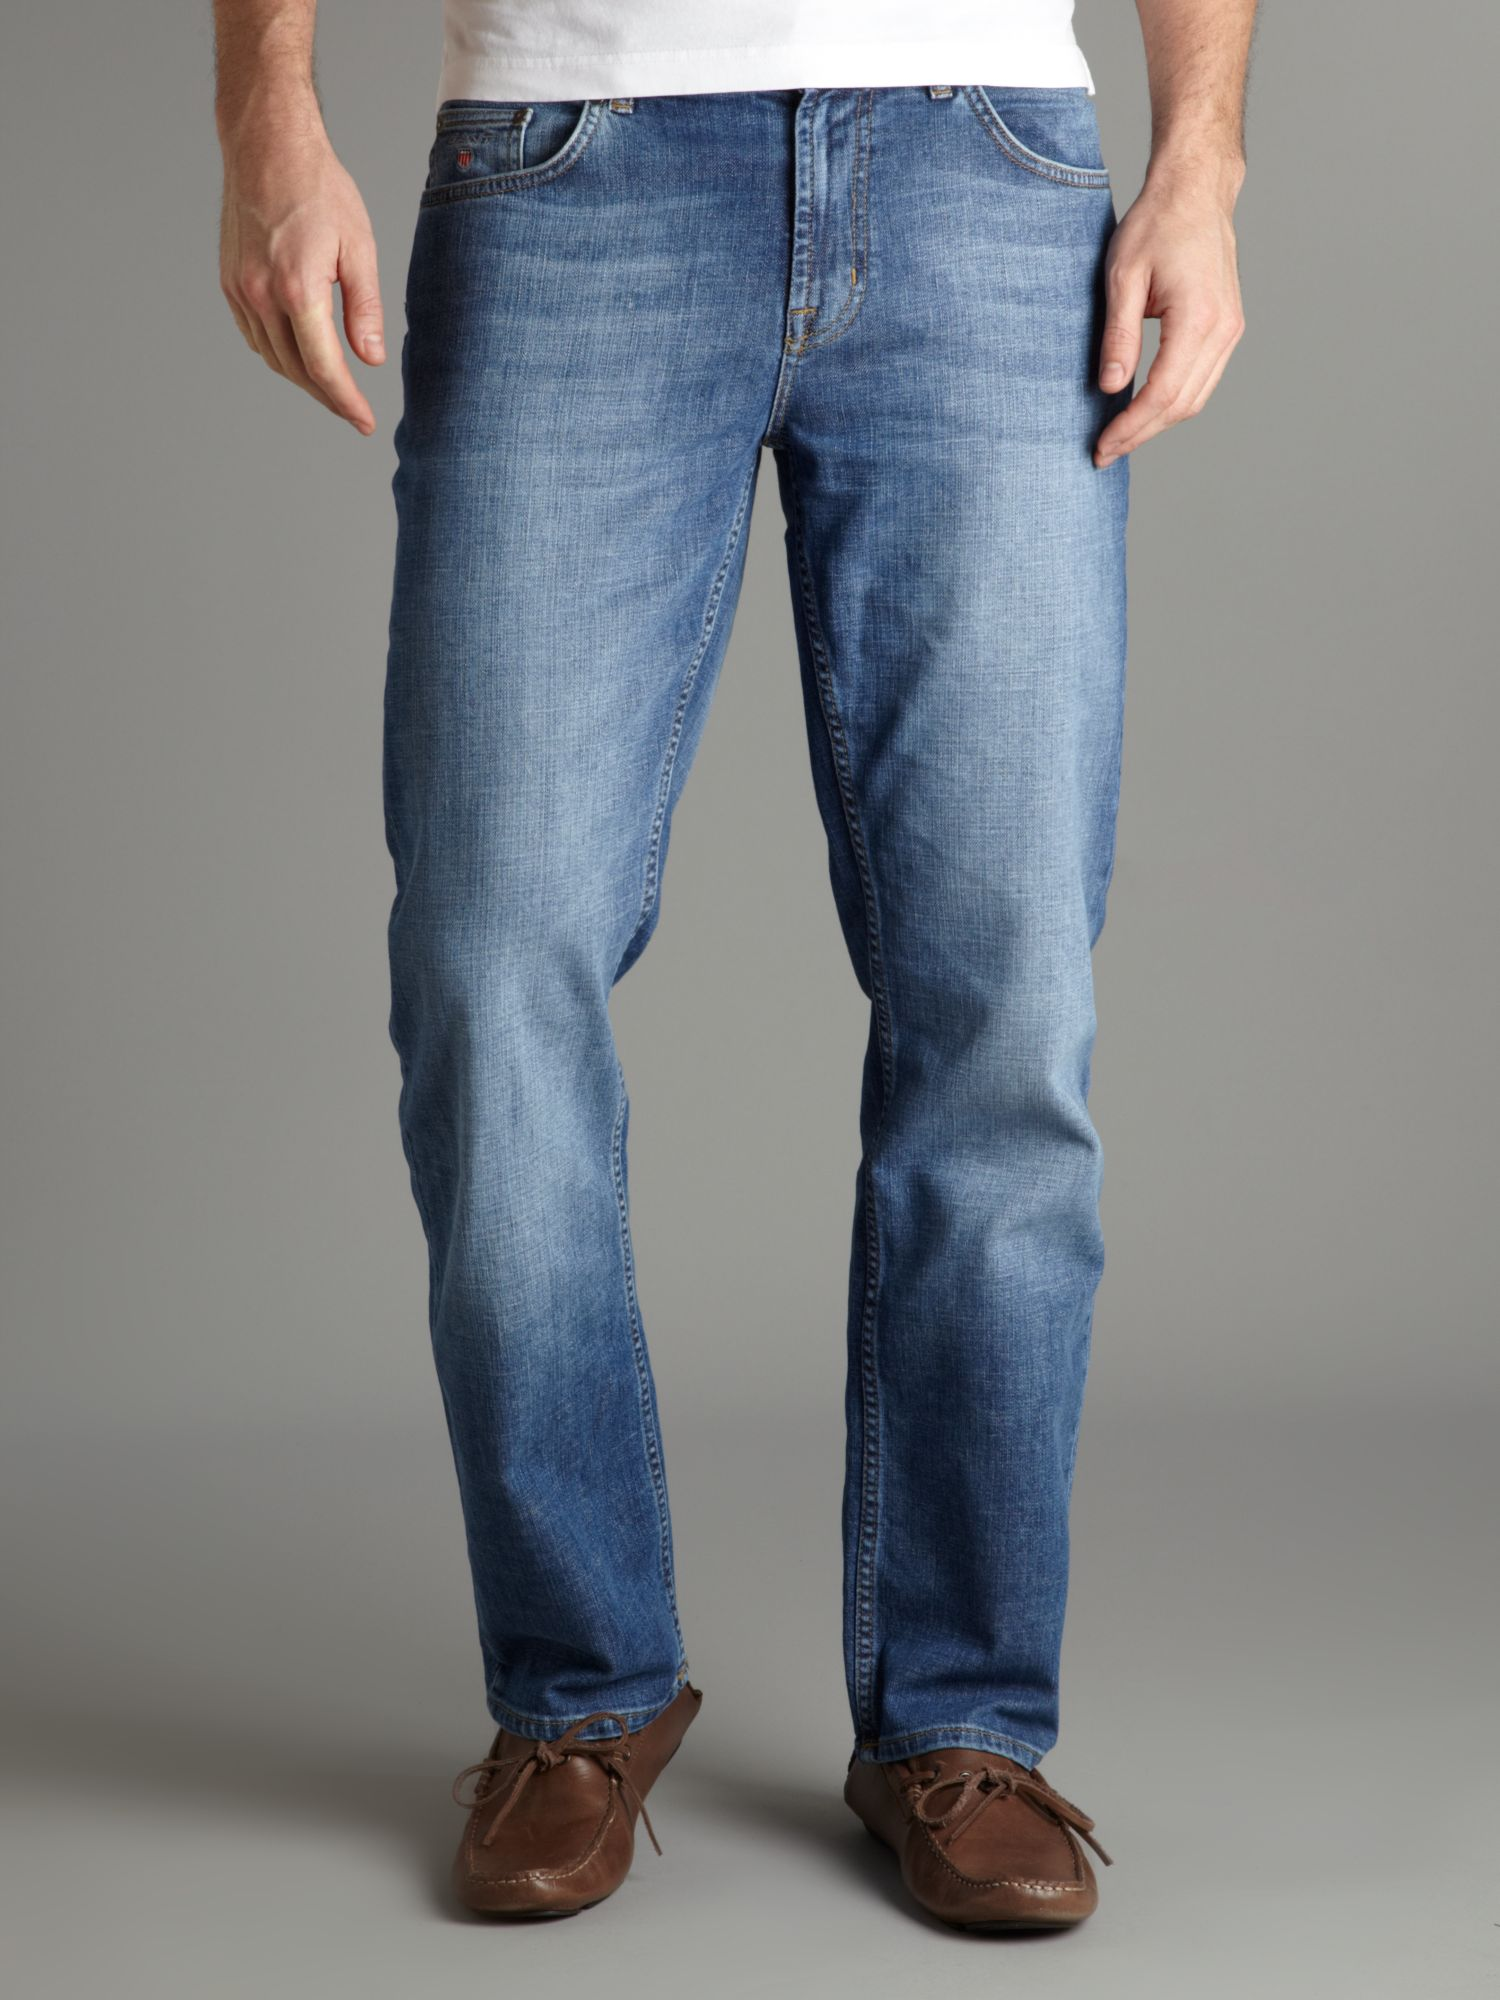 GANT Straight Fitted Jeans in Denim (Blue) for Men